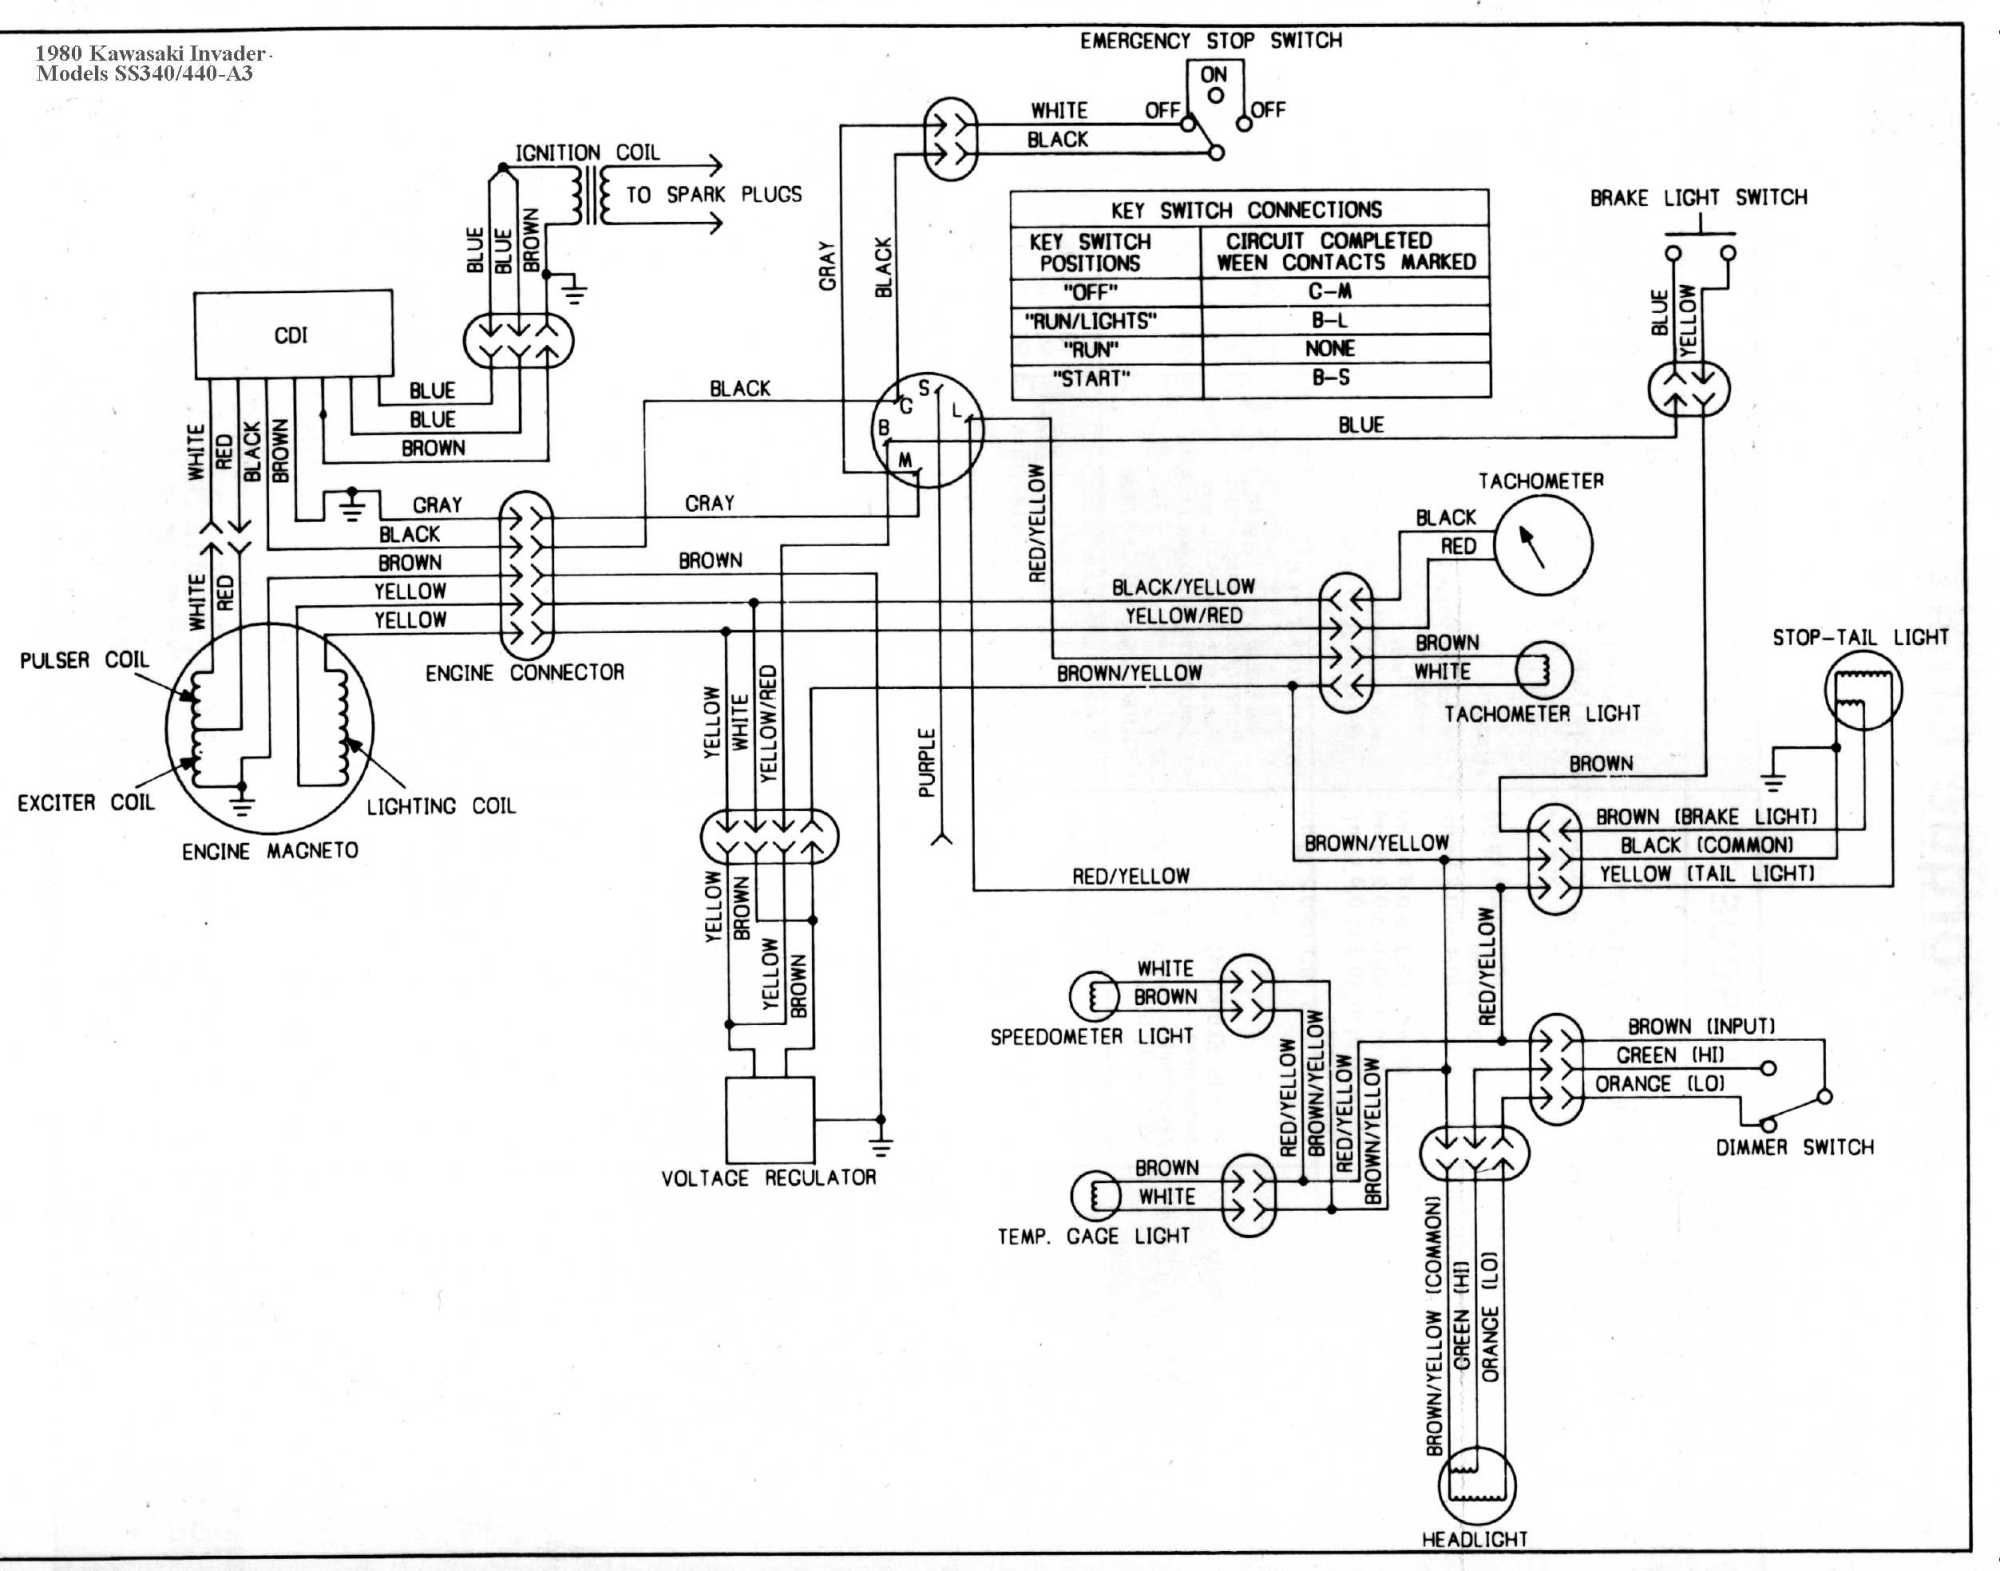 hight resolution of snowmobile wiring diagram wiring diagram repair guideskawasaki snowmobile wiring diagram